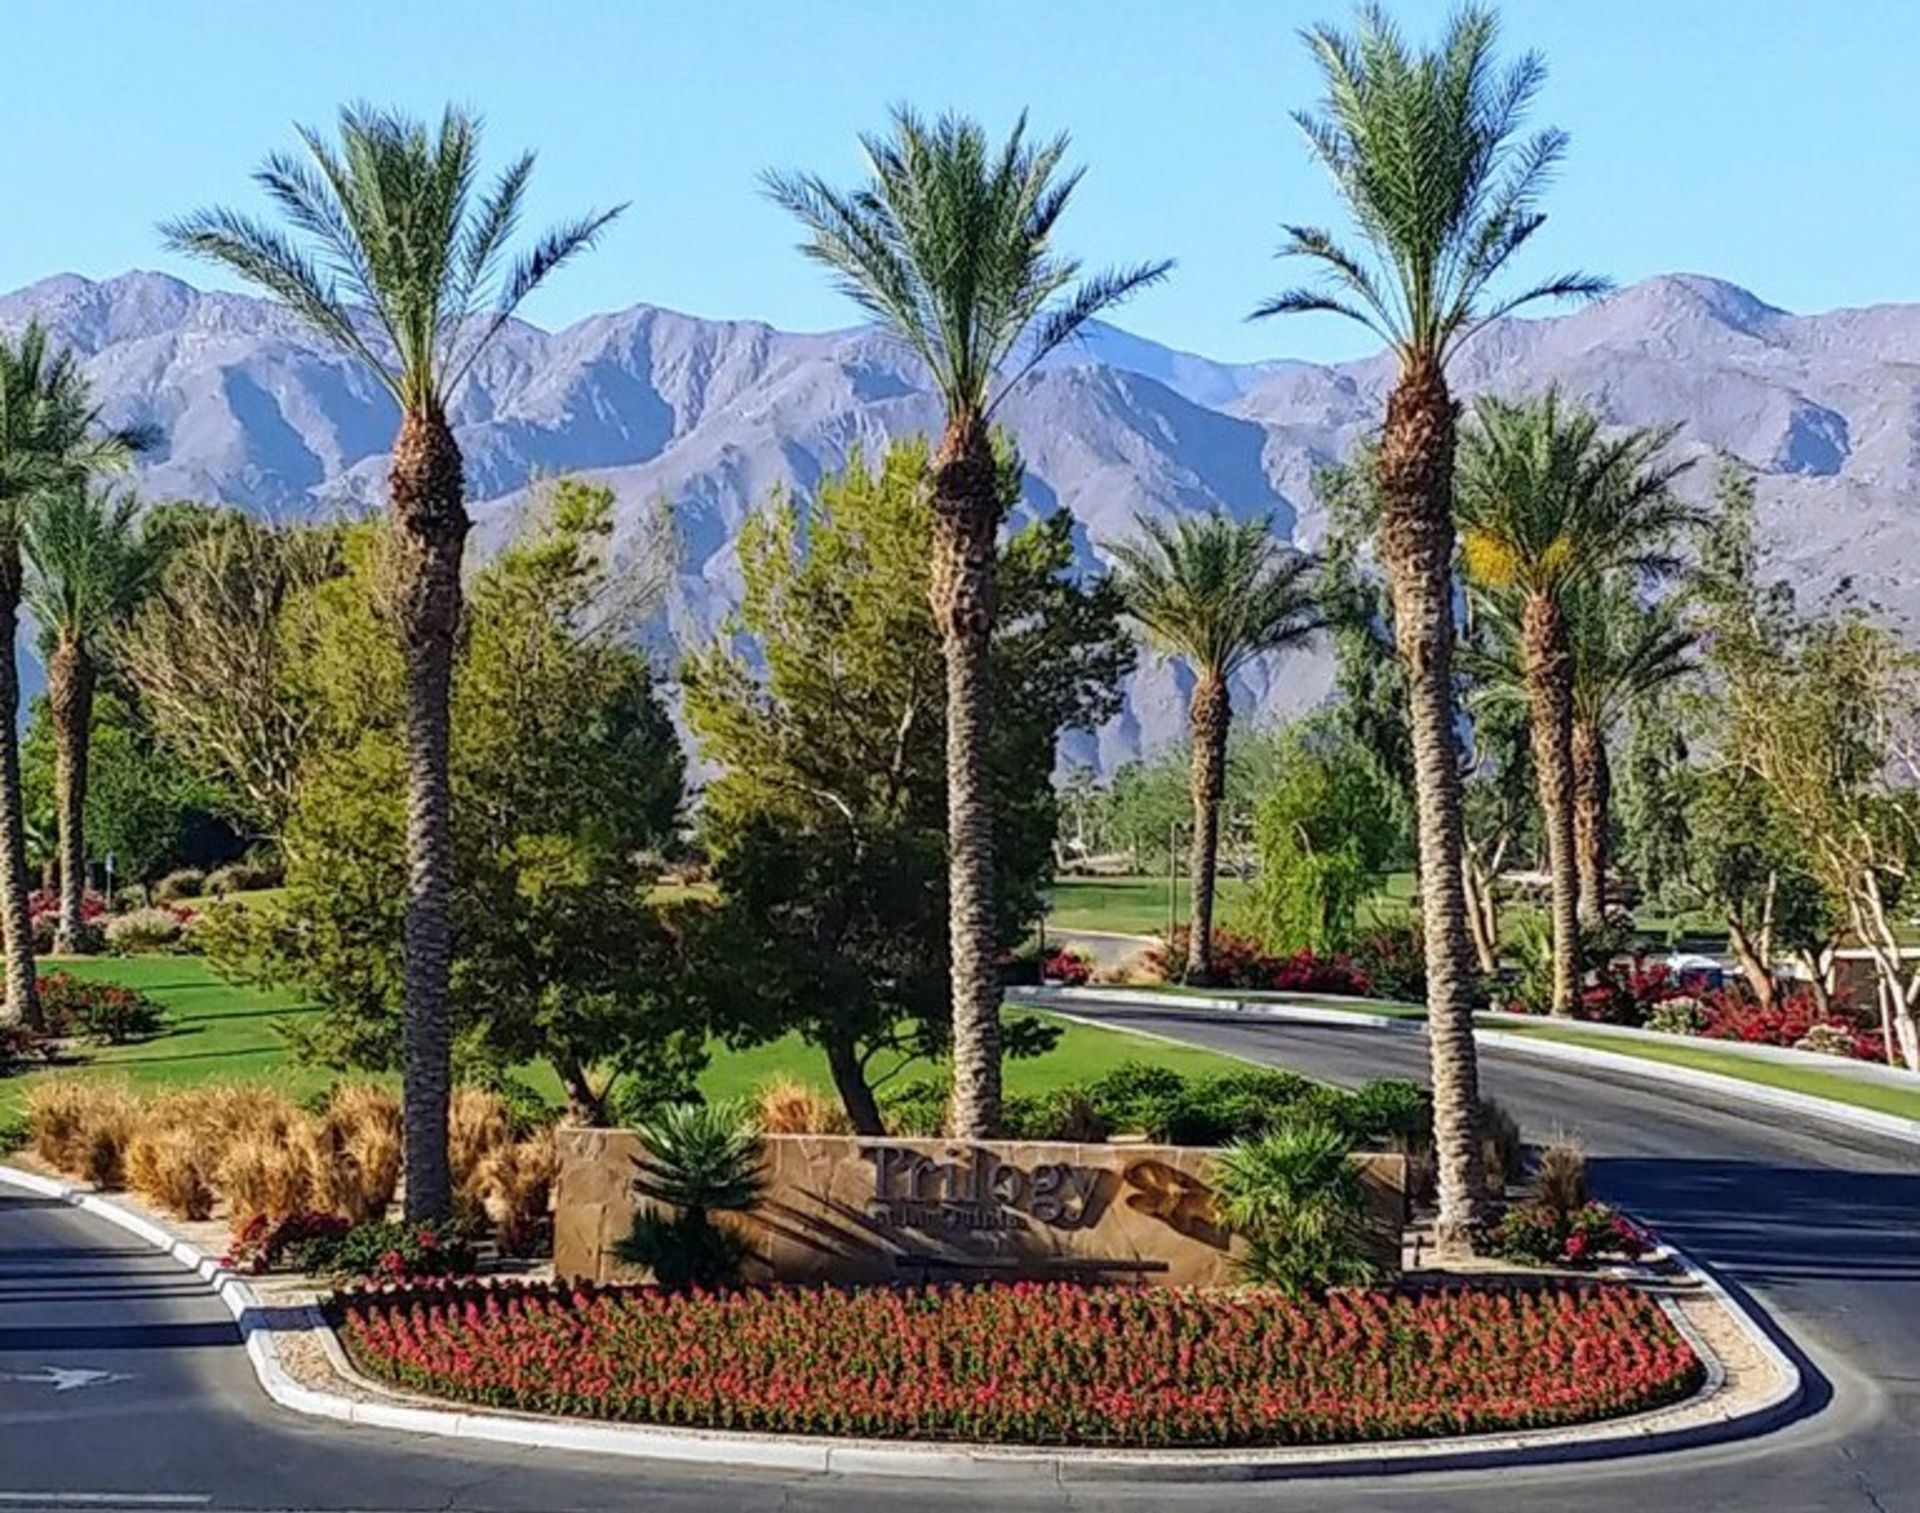 55+ Trilogy at La Quinta. Retirement Life, Perfected!